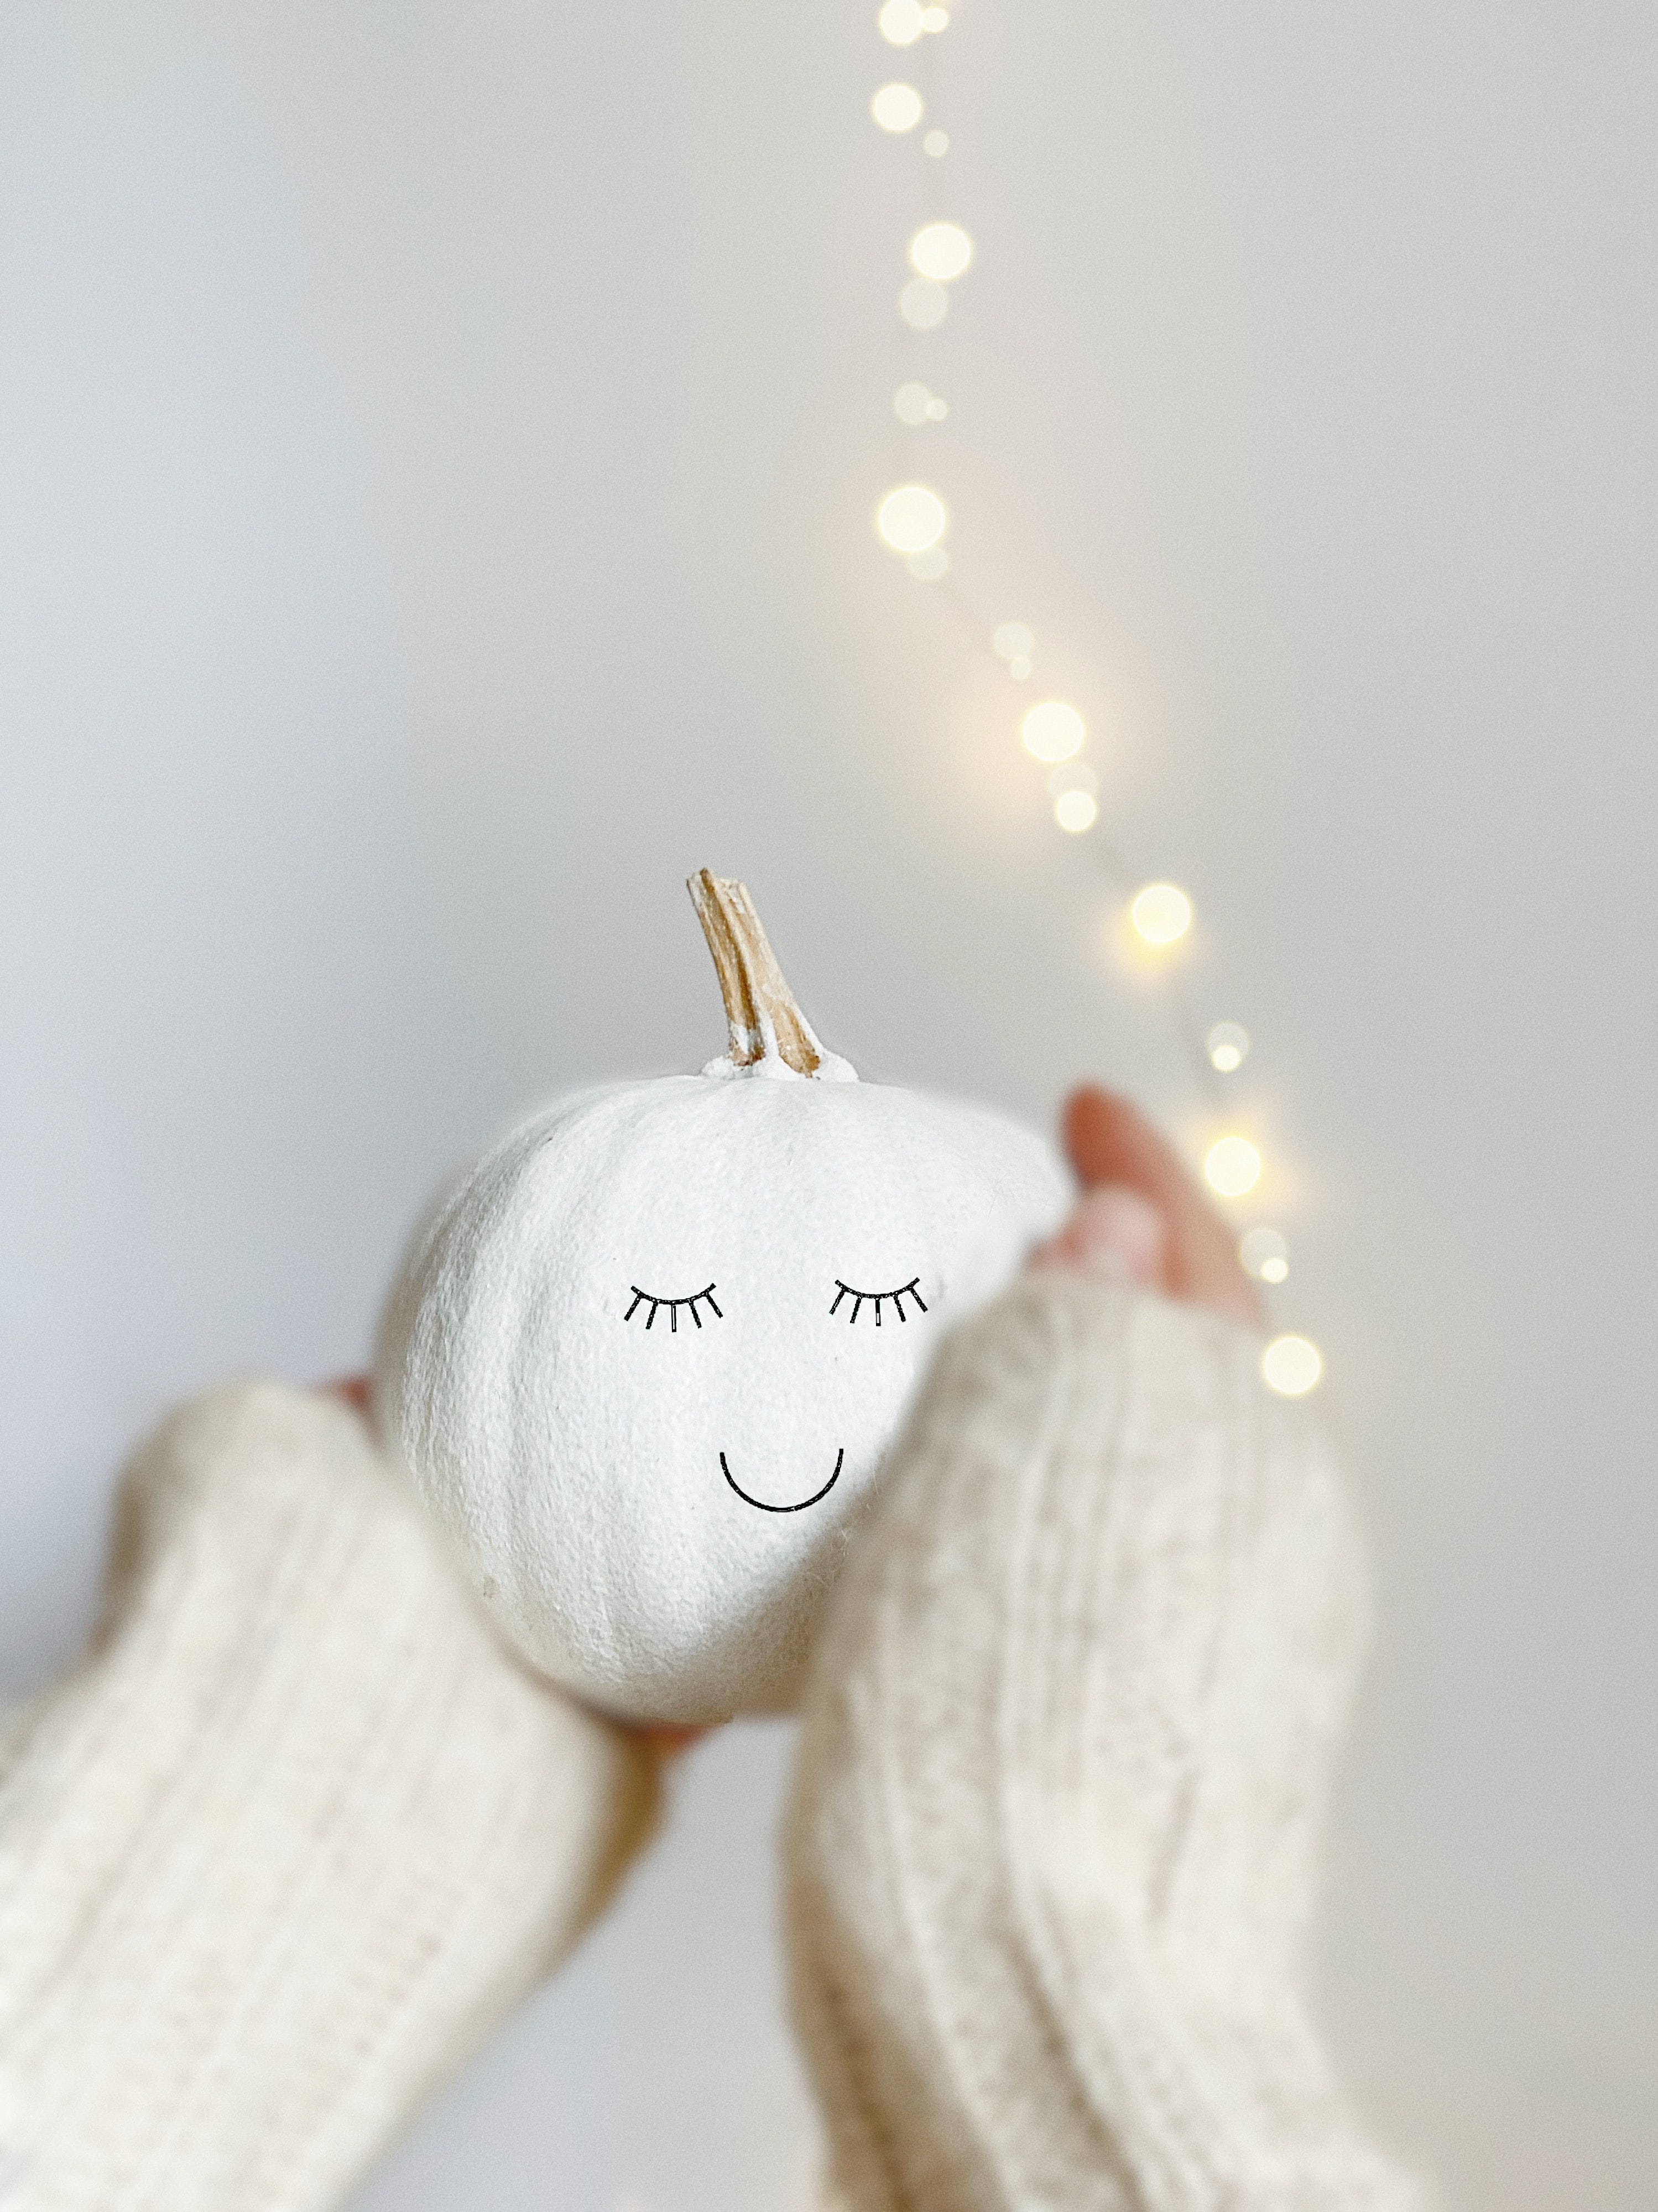 57099 Screensavers and Wallpapers Emoticon for phone. Download Smiley, Emoticon, Pumpkin, Miscellanea, Miscellaneous, Hands, Garland pictures for free